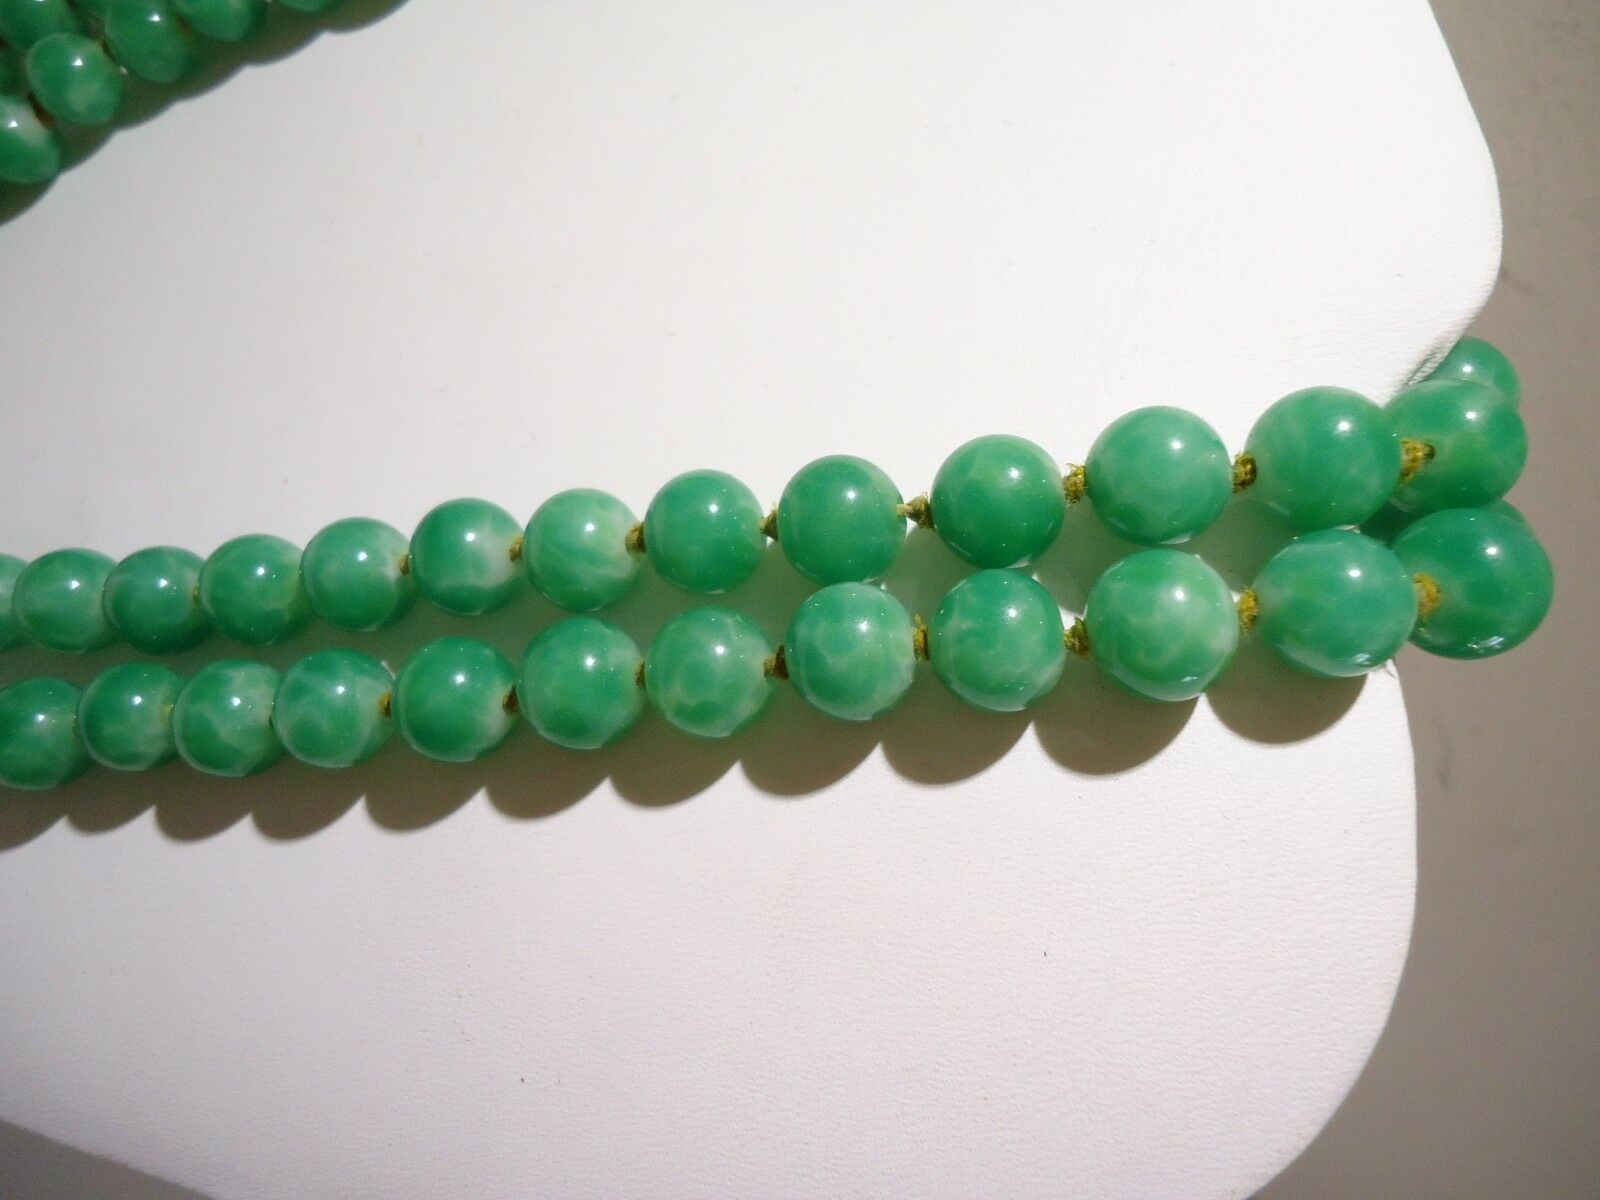 Beautiful vintage green screw back earrings glass tube beads knotted design